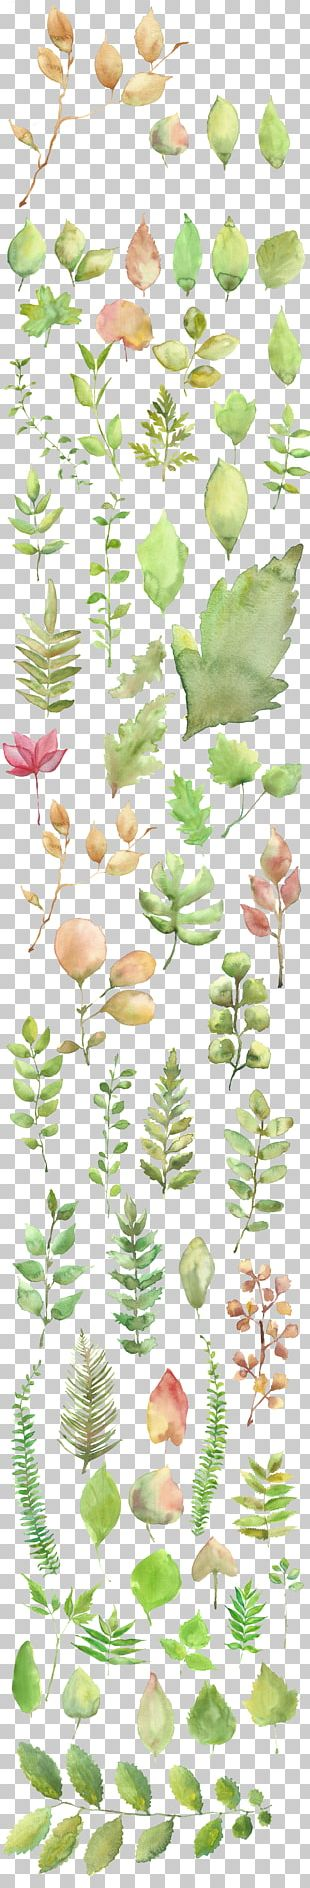 Watercolor Painting Shading PNG